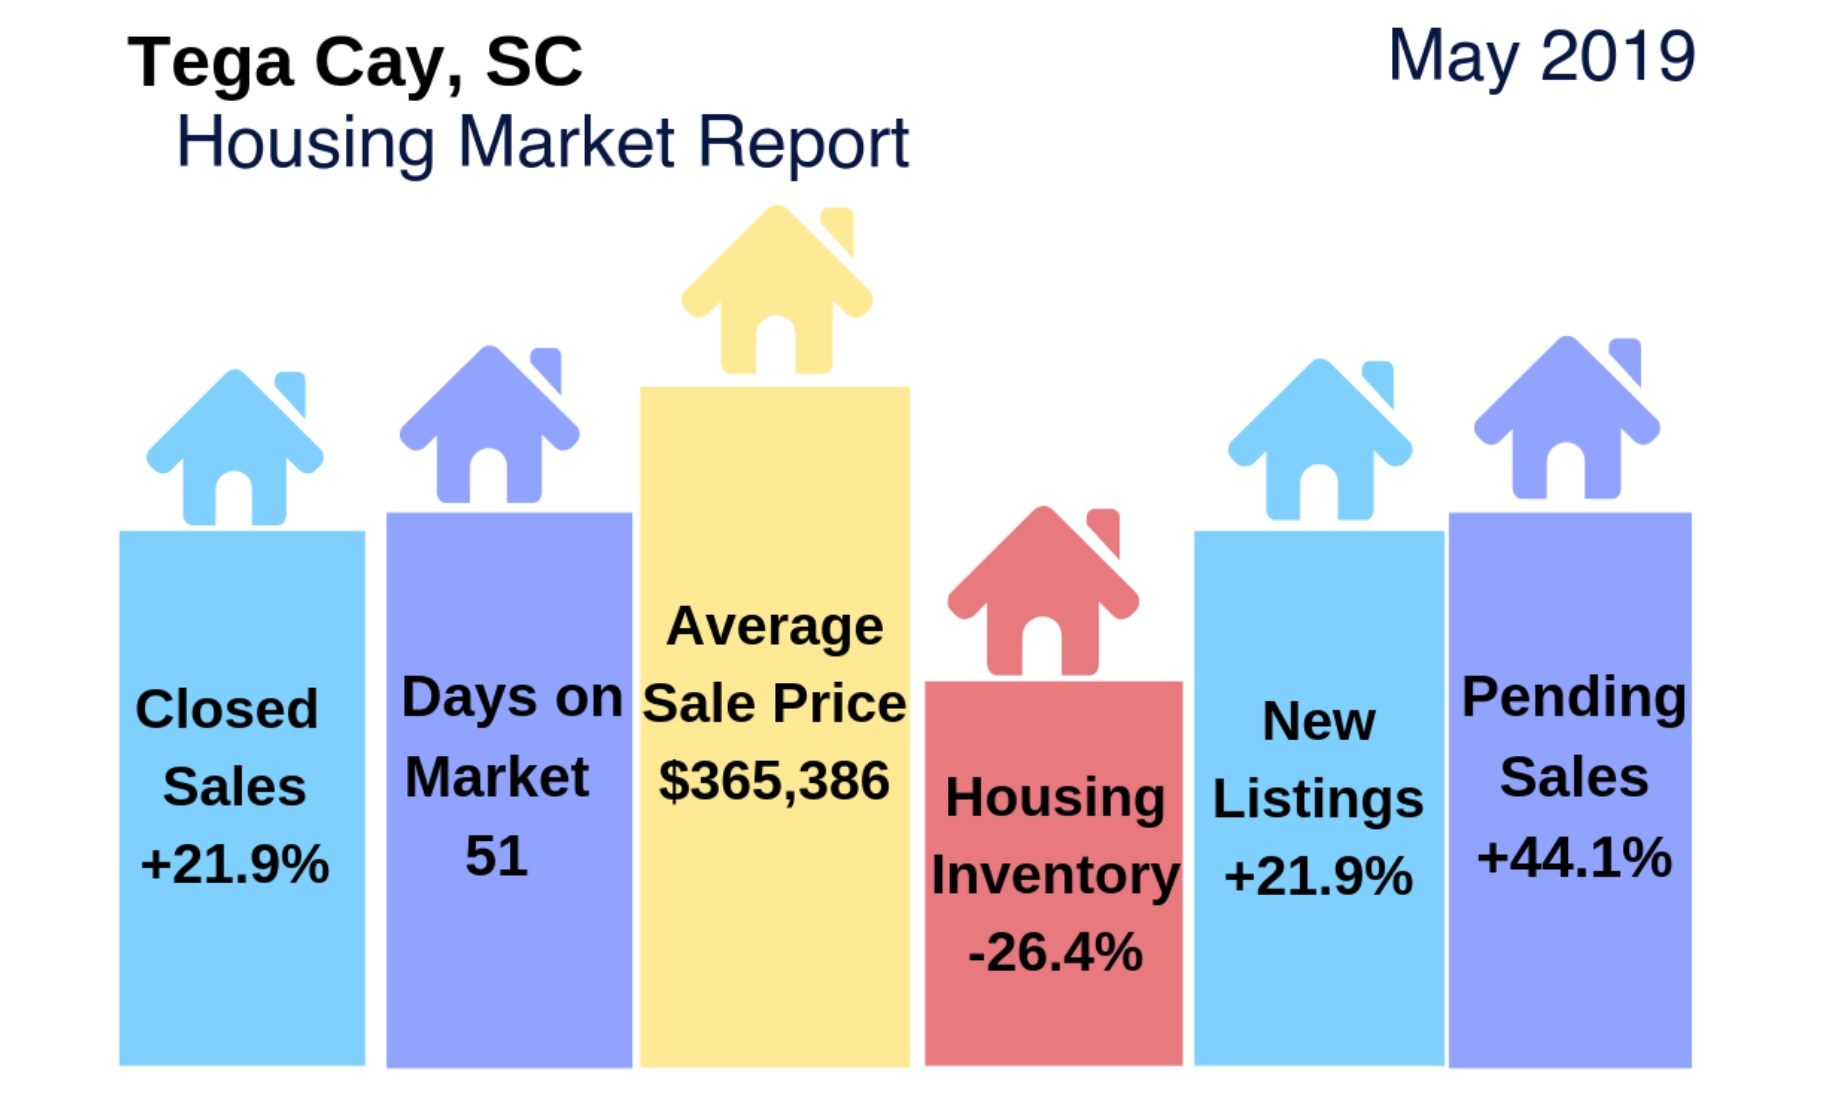 Fort Mill & Tega Cay, SC Housing Market Update/Videos: May 2019